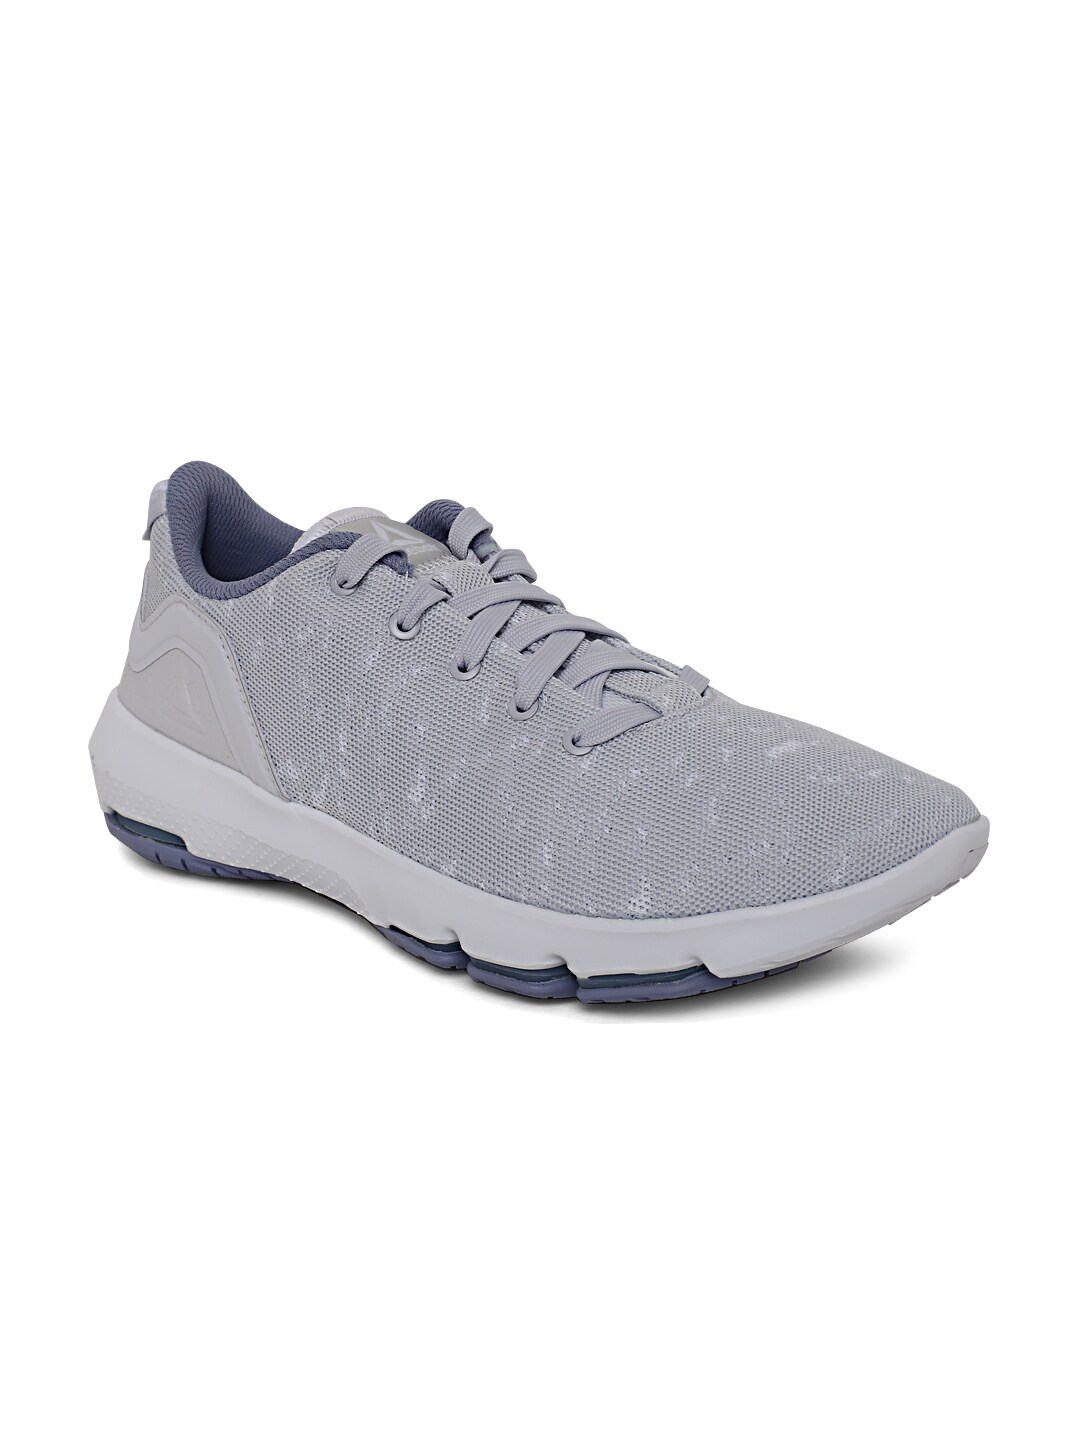 44fa3ab6790255 Reebok Walking - Buy Reebok Walking online in India